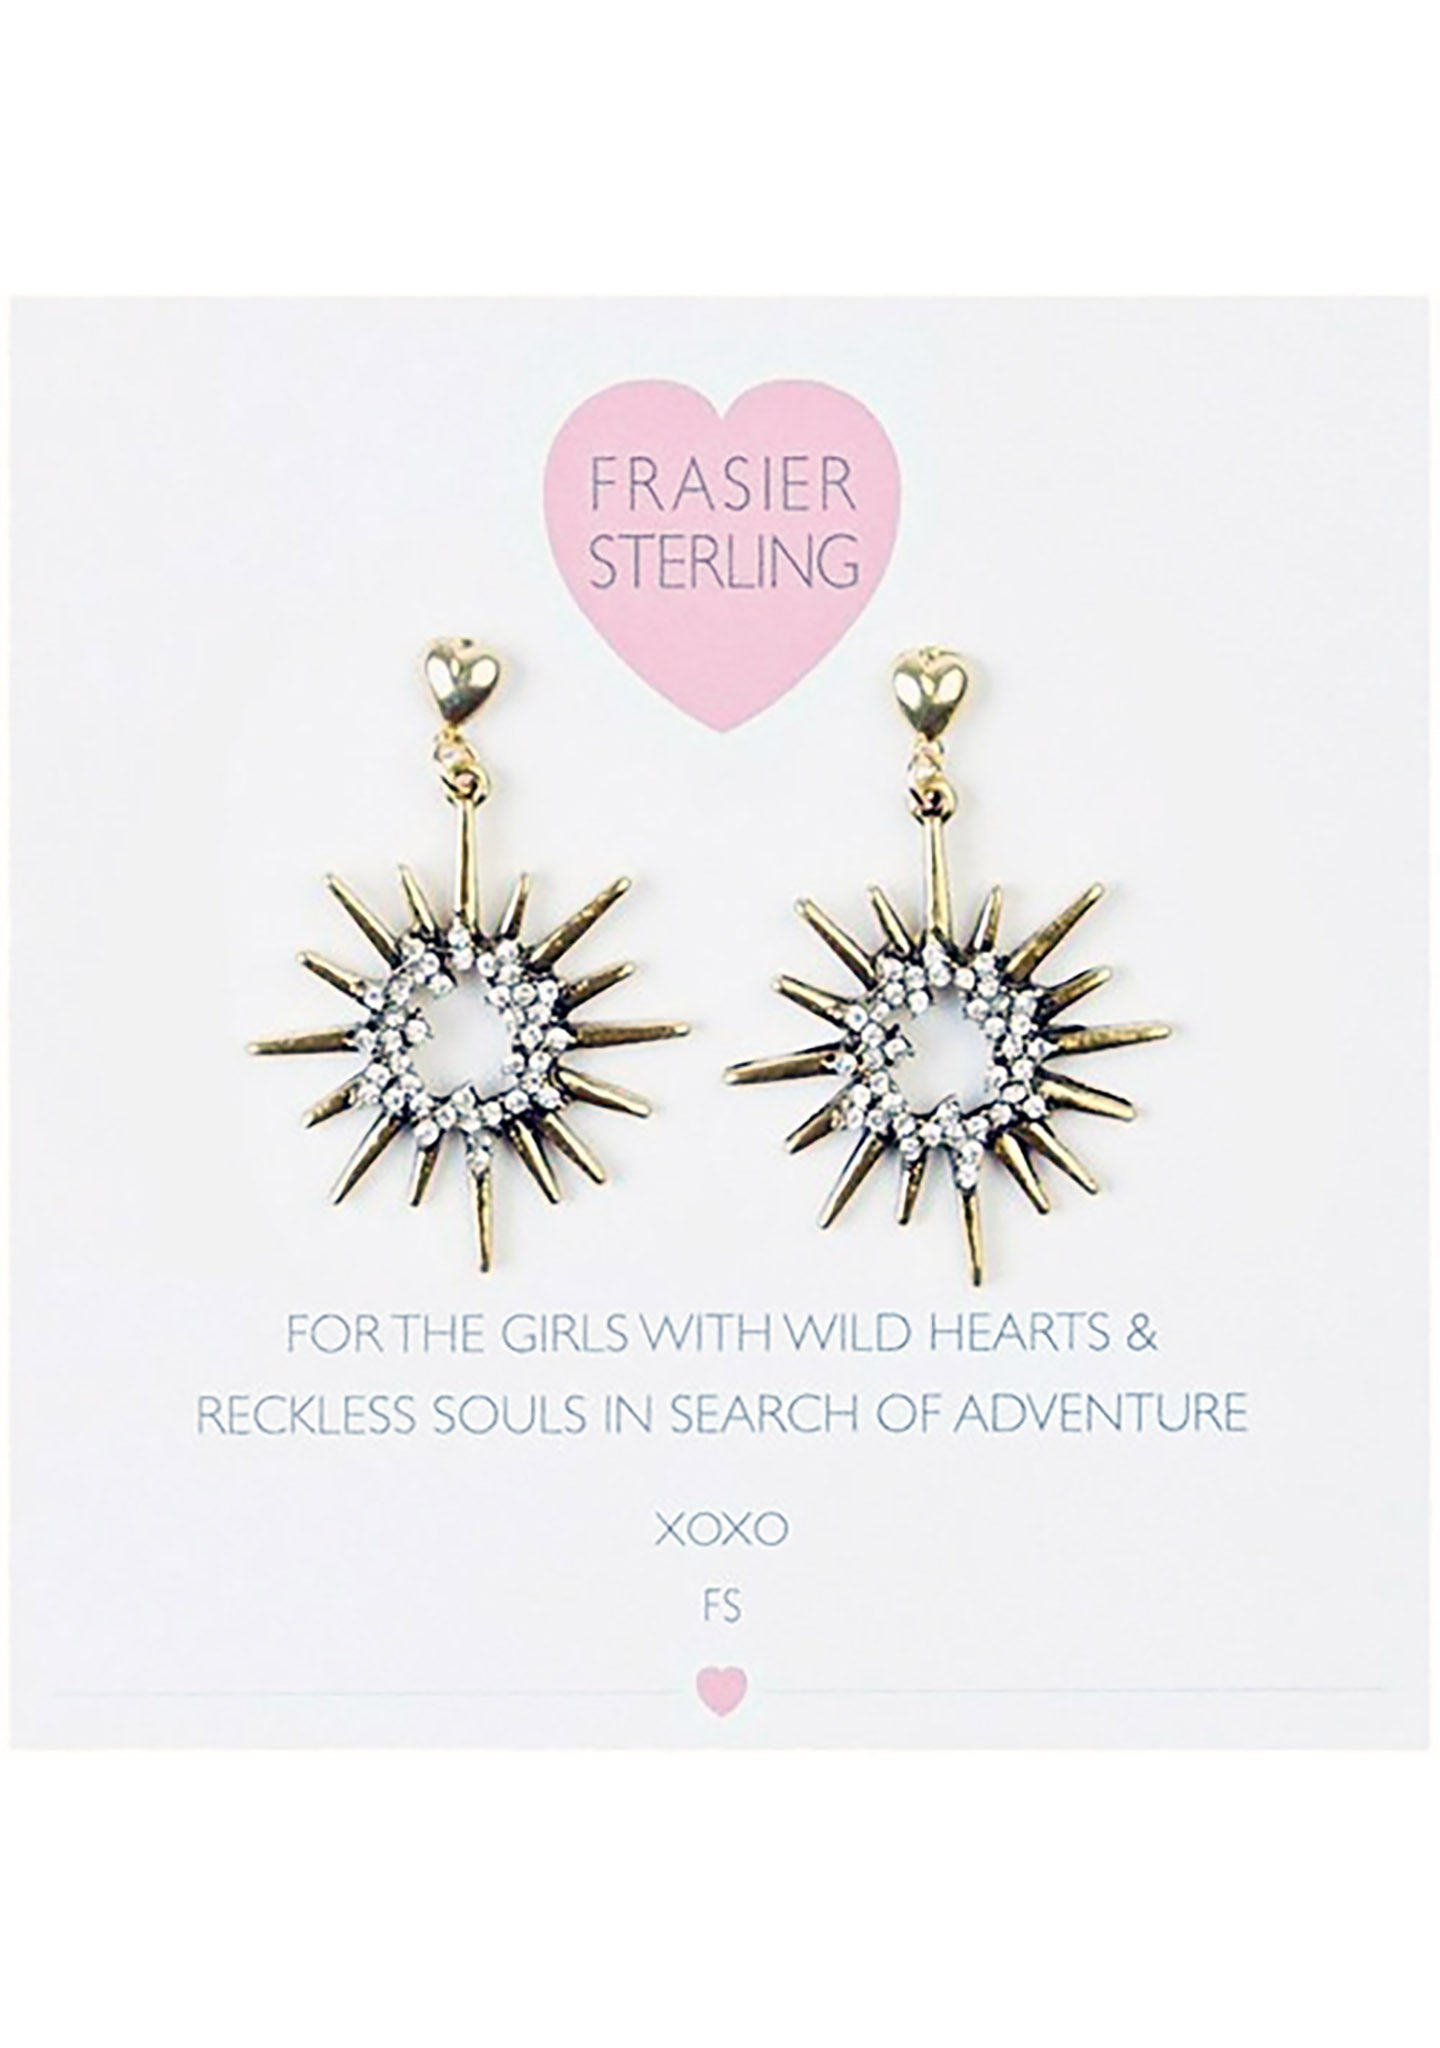 Frasier Sterling Starburst Earrings